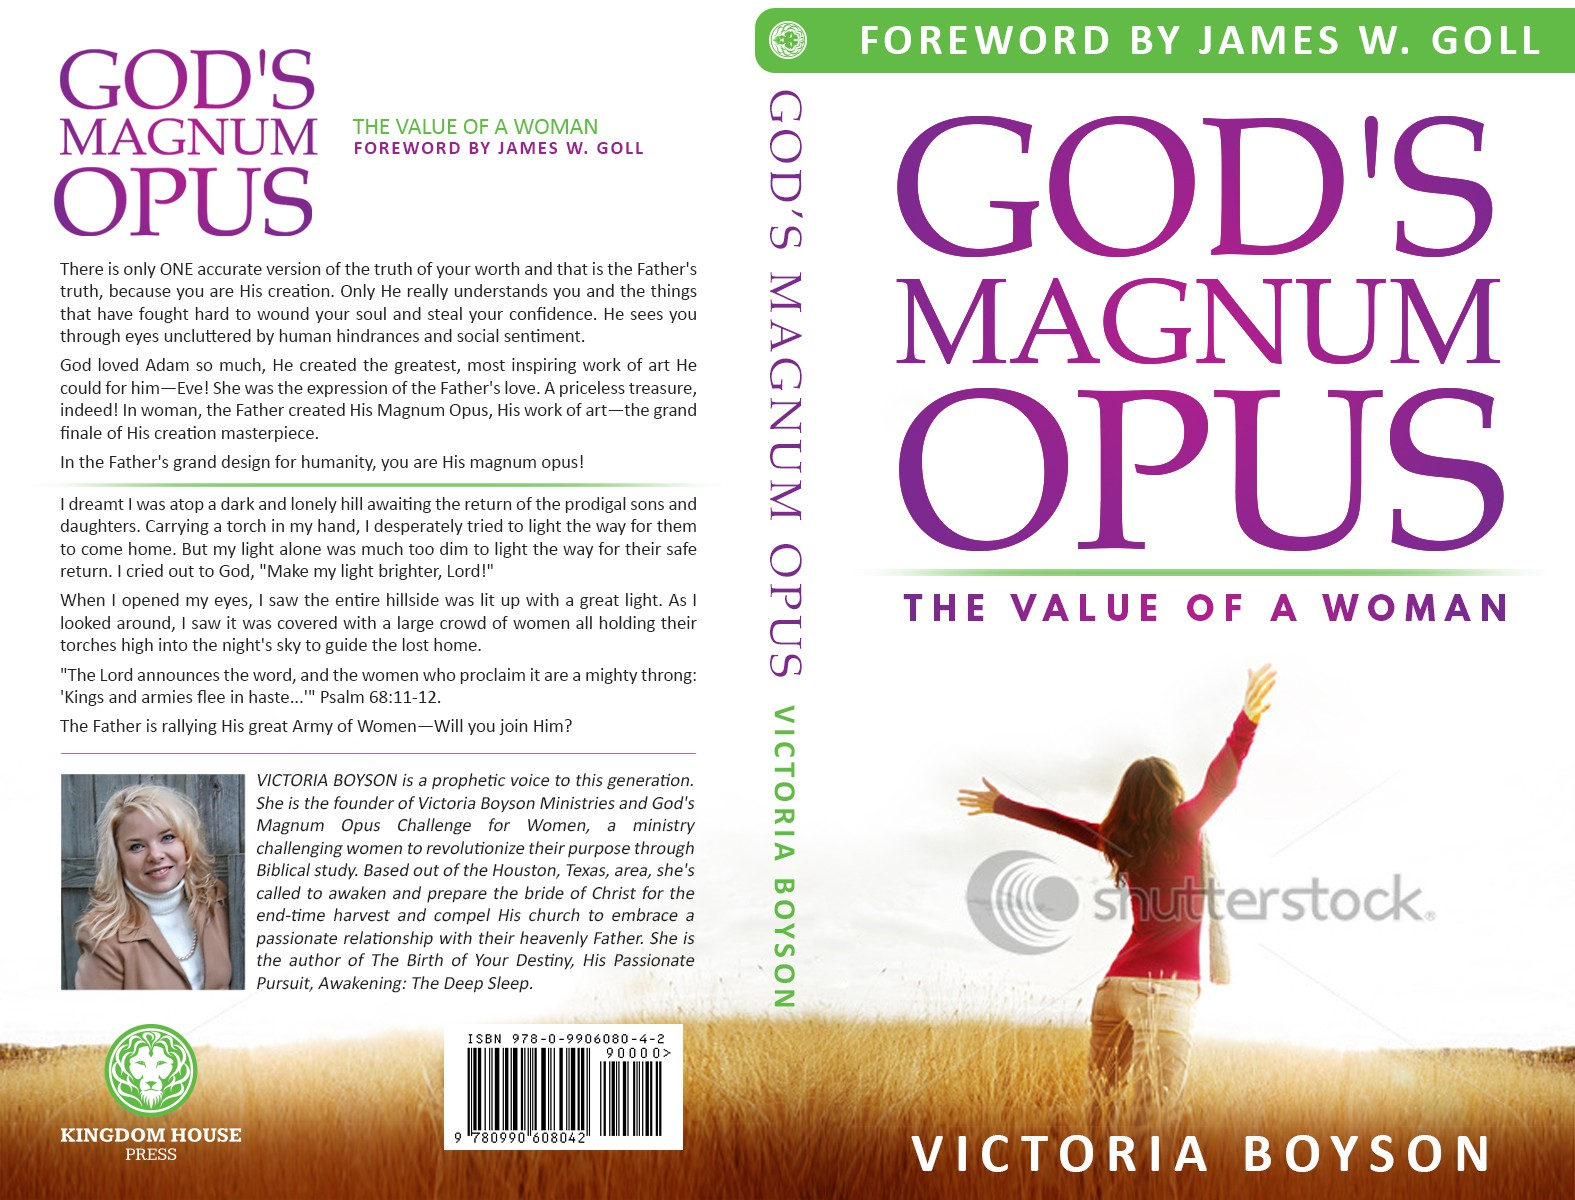 Need a striking, professional cover for book about the value of women! God's Magnum Opus